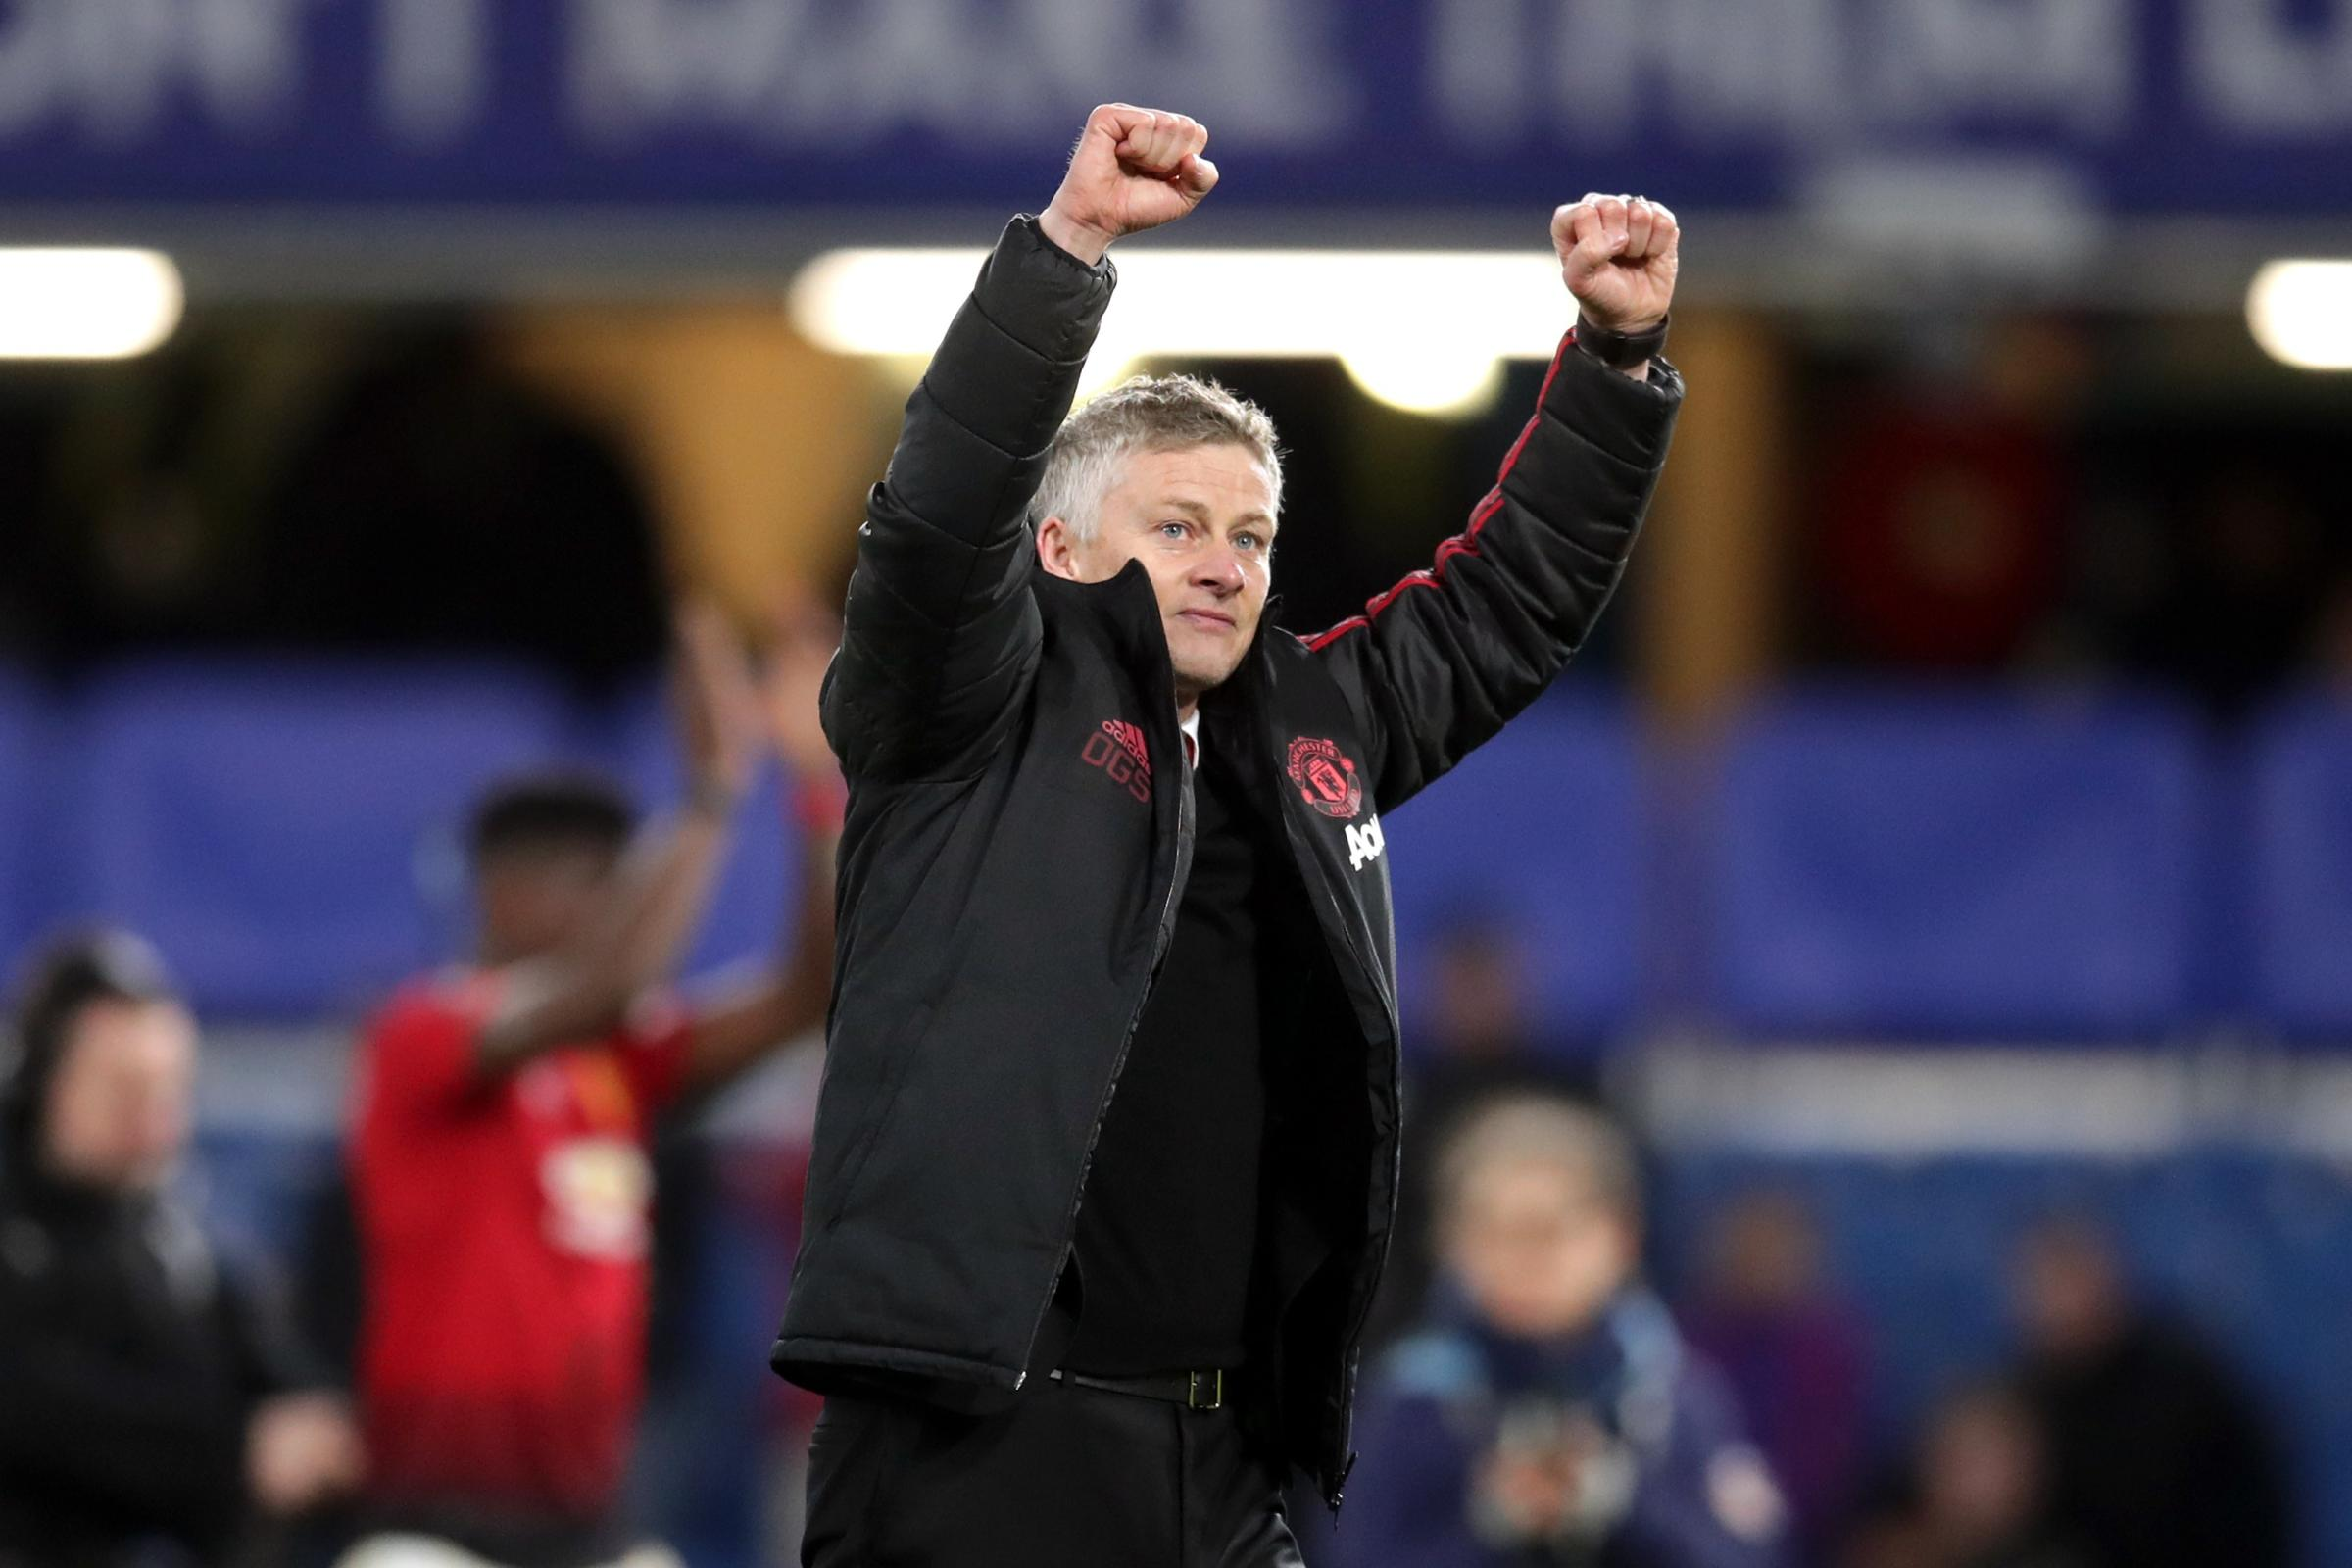 Ole Gunnar Solskjaer should be named Manchester United's permanent manager, according to Liverpool boss Jurgen Klopp